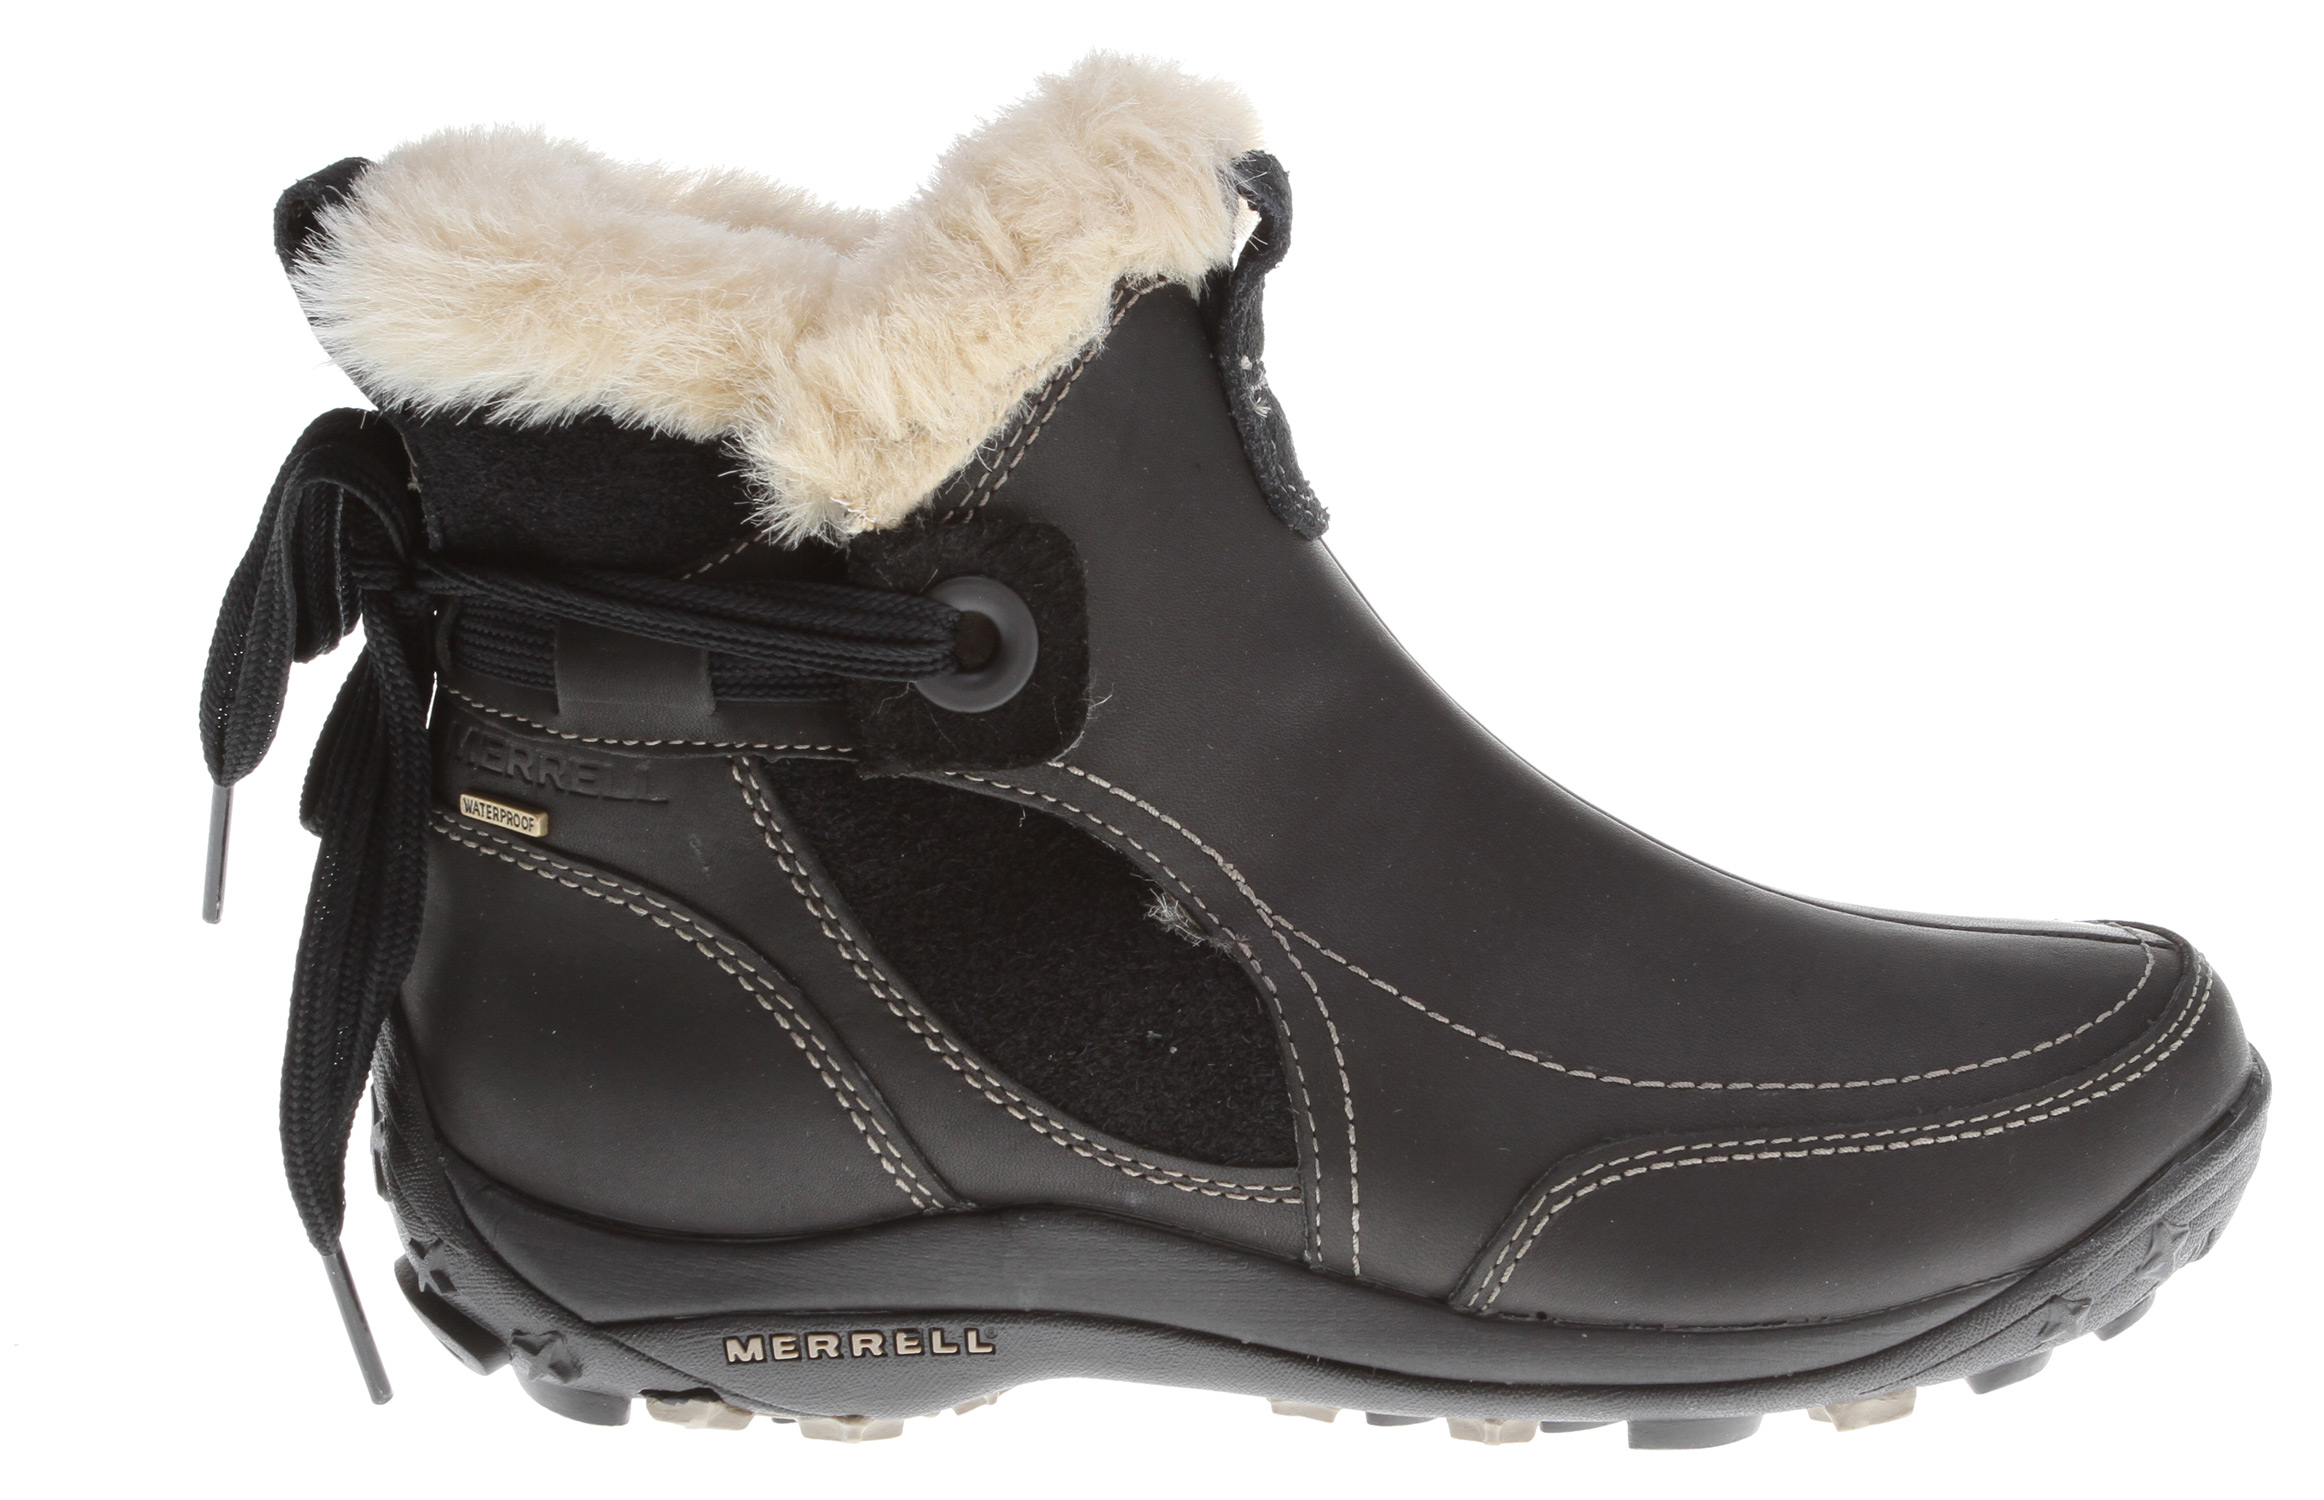 Indulge in the elixir of winter endlessly with this petite cold weather boot that's big on warmth. Its refined full grain leather and suede upper is WeatherTight and seam-sealed to prevent seeping, with a Thinsulate low-bulk barrier, 200 grams of Primaloft insulation and a faux-fur lining to boot. Supportive cushioning below guarantees good times.Key Features of the Merrell Misha Mid Waterproof Boots: Cement construction provides lightweight durability Suede waterproof leather upper Waterproof membrane provides impermeable but breathable barrier Merrell Conductor Fleece provides lightweight, versatile heat retention in varying conditions 200 grams of PRIMALOFT insulation treated with antimicrobial solution OrthoLite anatomical footbed Molded nylon arch shank Merrell Air Cushion in the heel absorbs shock and adds stability Merrell QFORM comfort midsole provides women's specific-sequenced cushioning Merrell Snow De Vie Sole/sticky rubber Women's Weight: 1 lb 10 ozs - $97.95